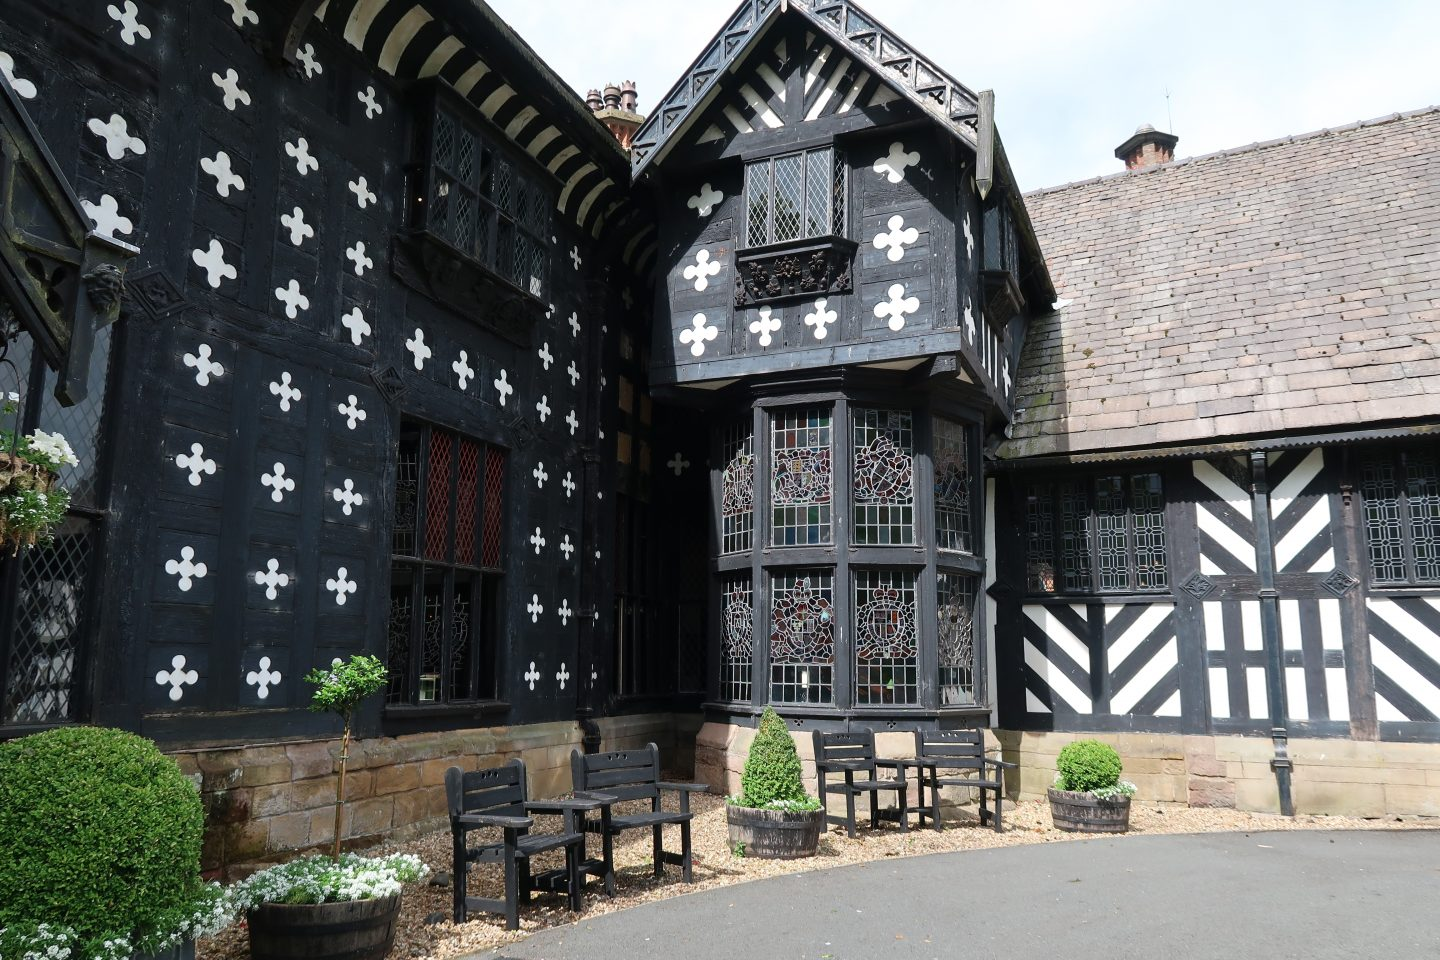 A Family Day Out At Samlesbury Hall In Lancashire